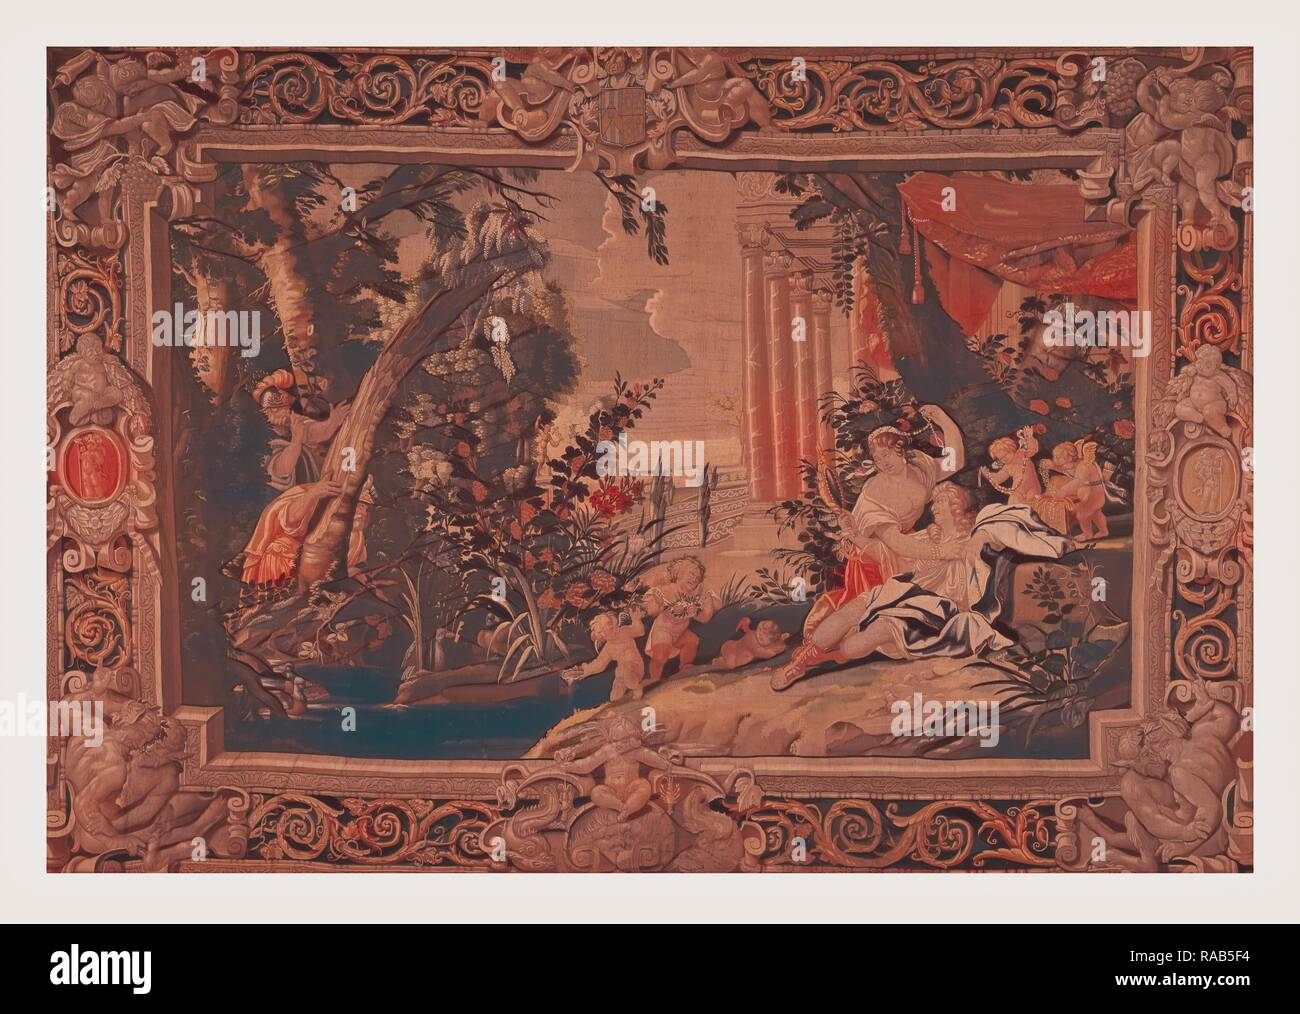 Carlo and Ubaldo find Rinaldo in Armida's garde. Reimagined by Gibon. Classic art with a modern twist reimagined Stock Photo